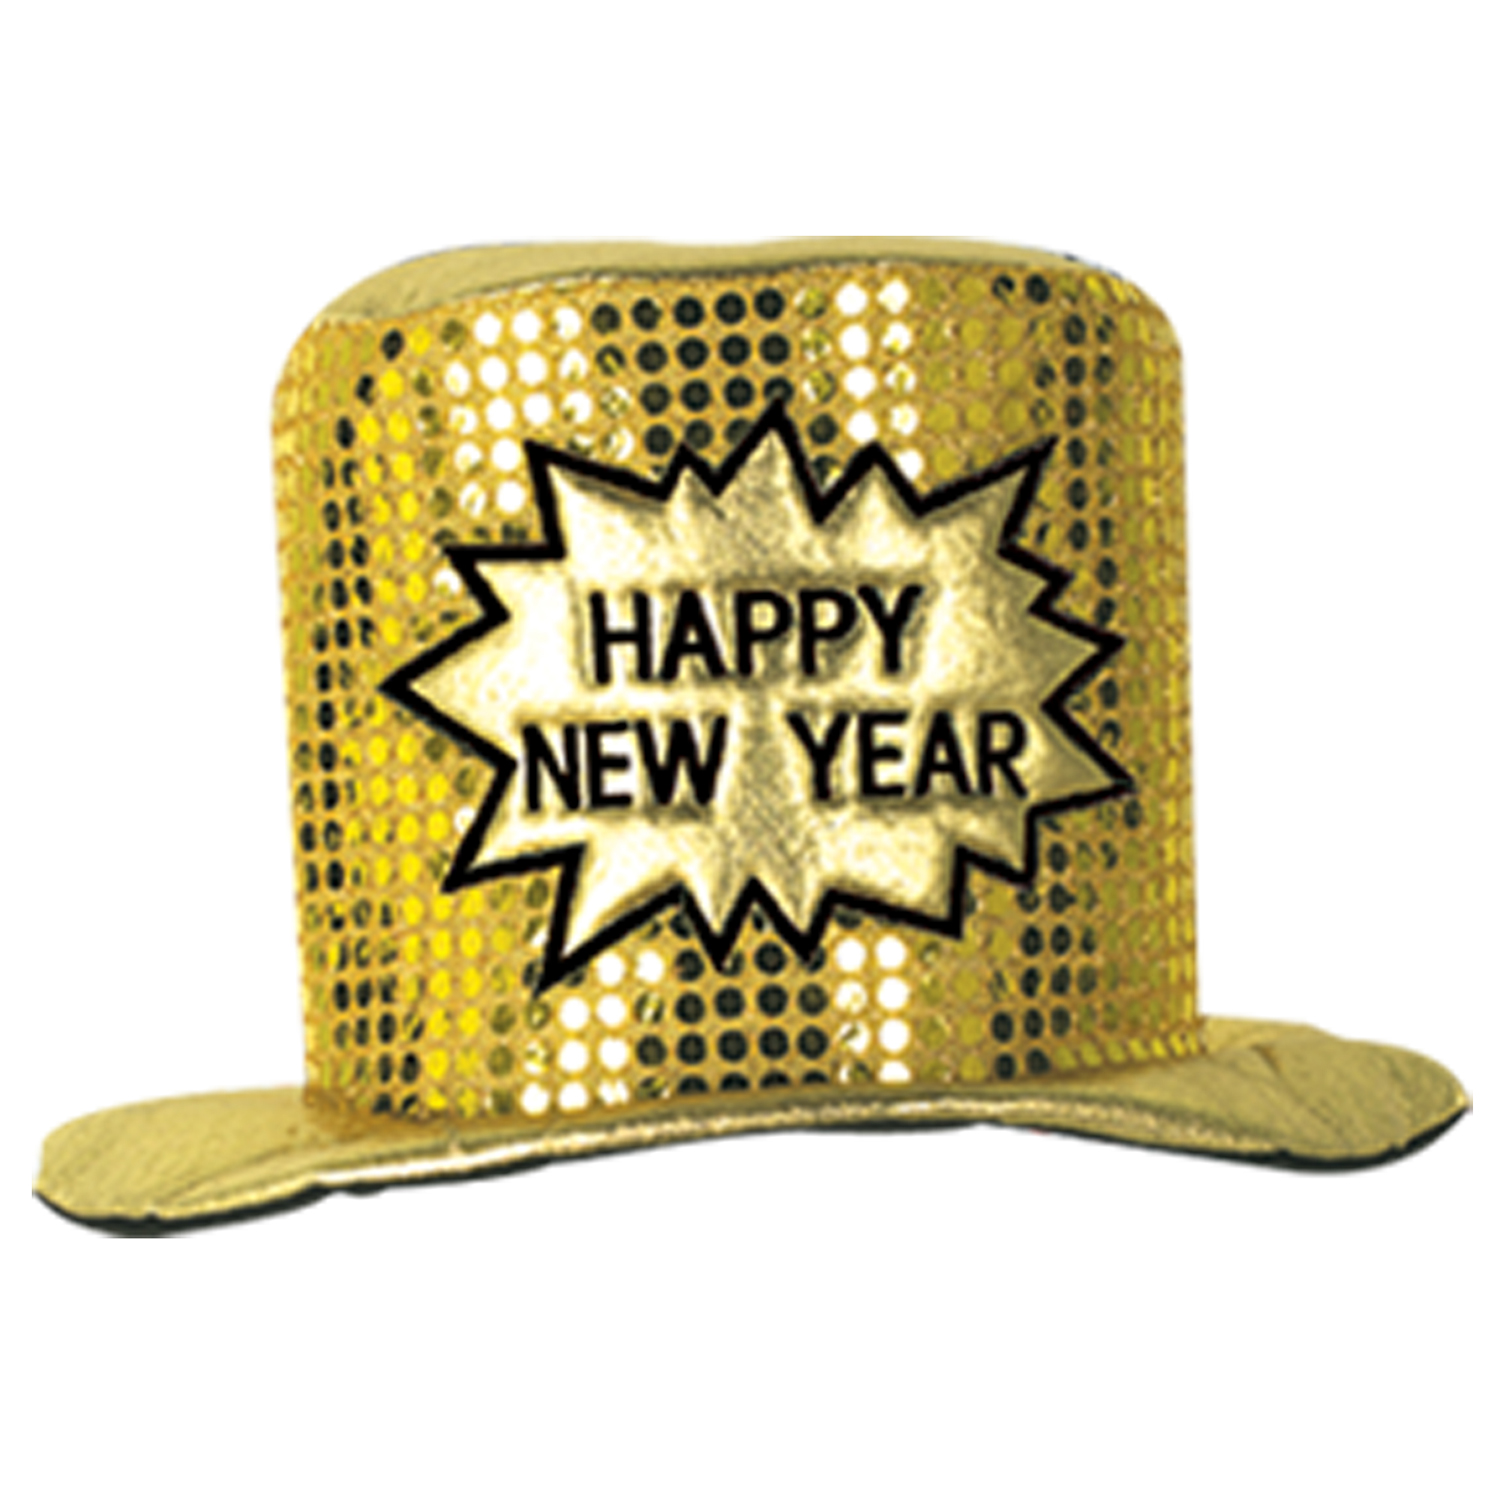 Glitz 'N Gleam HNY Top Hat gold